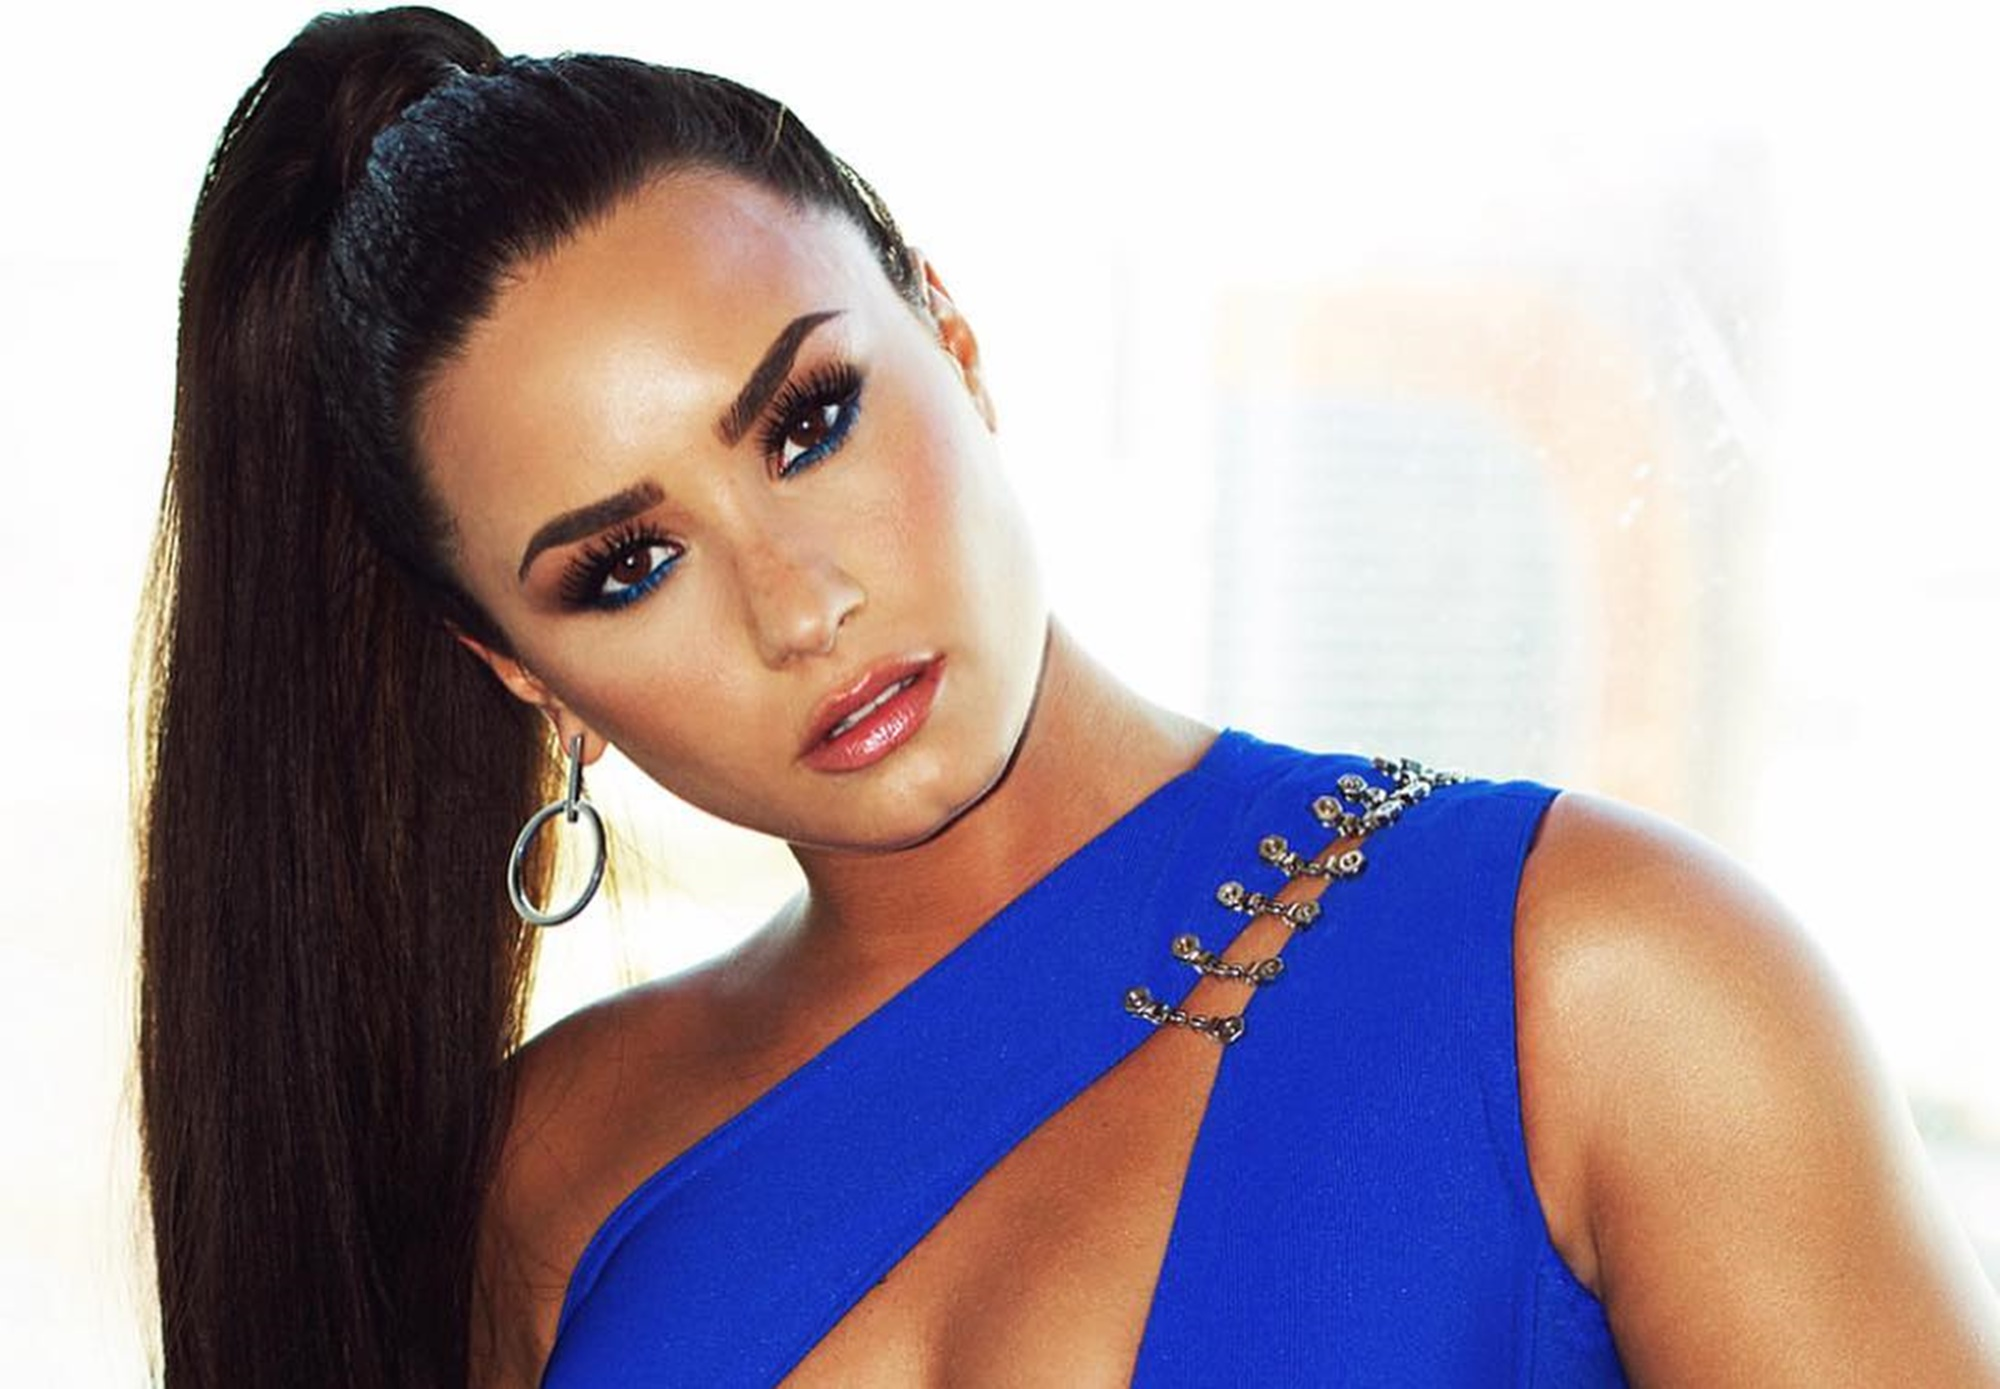 demi-lovato-shows-off-her-curves-in-new-vacation-pictures-as-she-asks-media-not-to-focus-on-her-body-shape